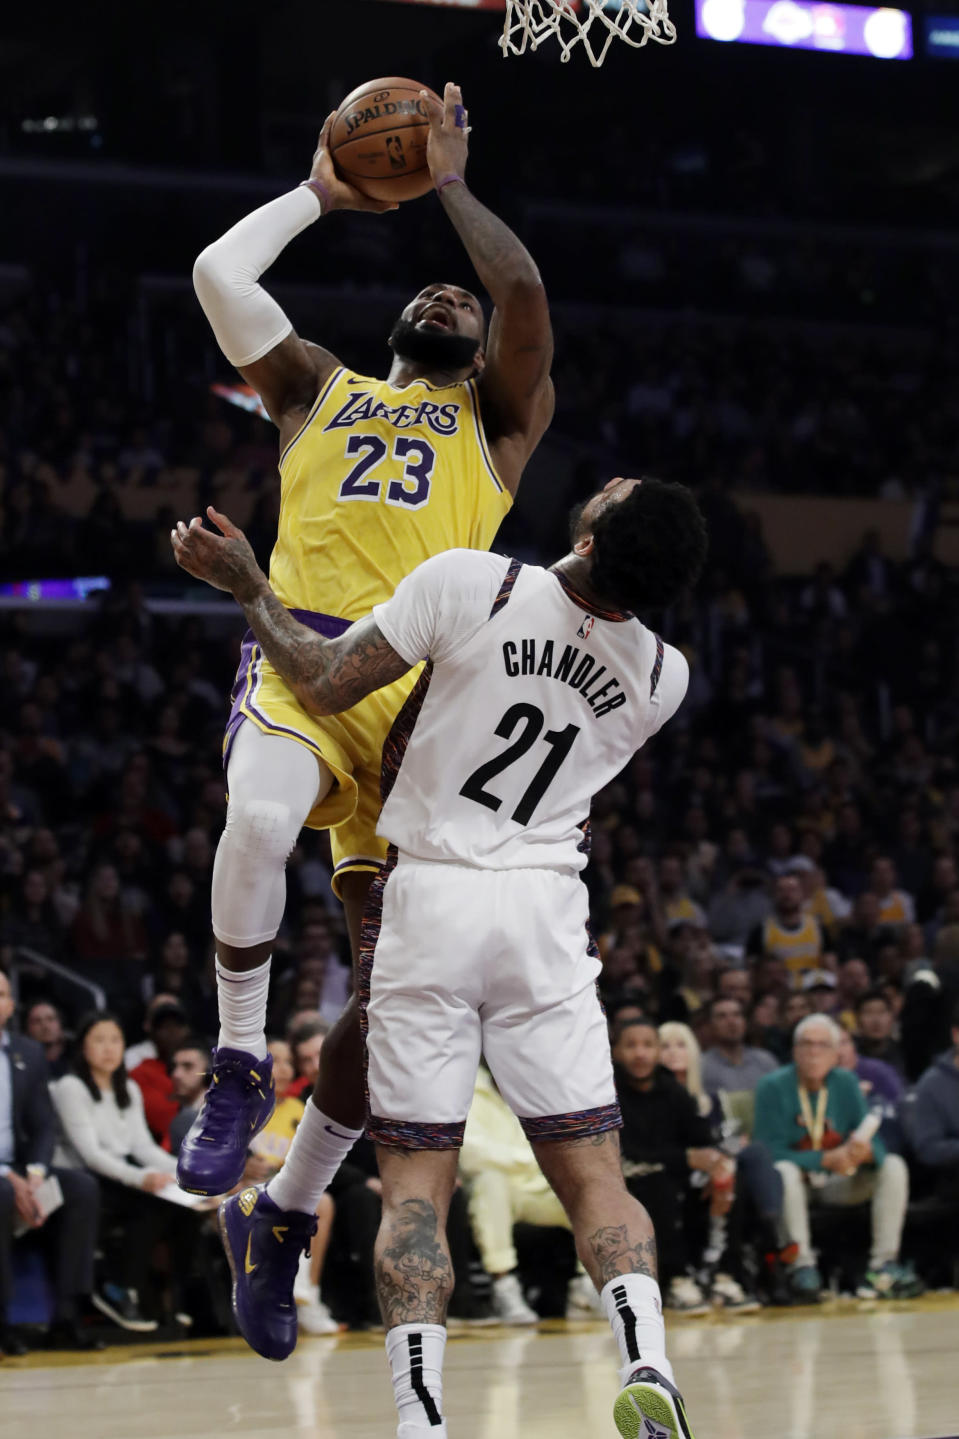 Los Angeles Lakers' LeBron James (23) shoots over Brooklyn Nets' Wilson Chandler (21) during the first half of an NBA basketball game Tuesday, March 10, 2020, in Los Angeles. (AP Photo/Marcio Jose Sanchez)